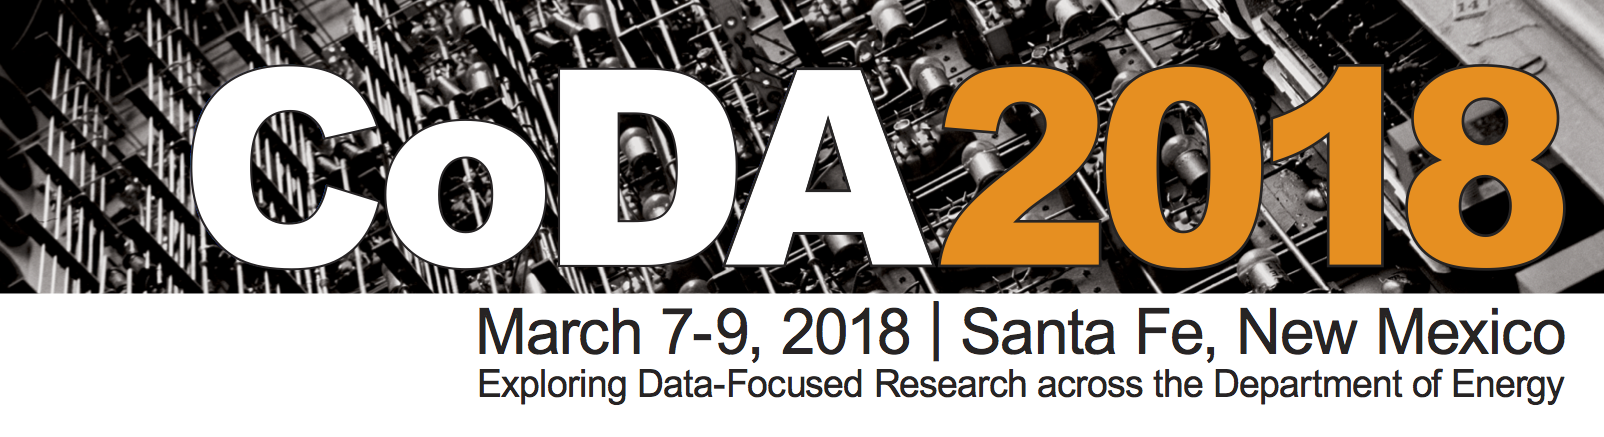 CoDA 2018 - Conference on Data Analysis 2018